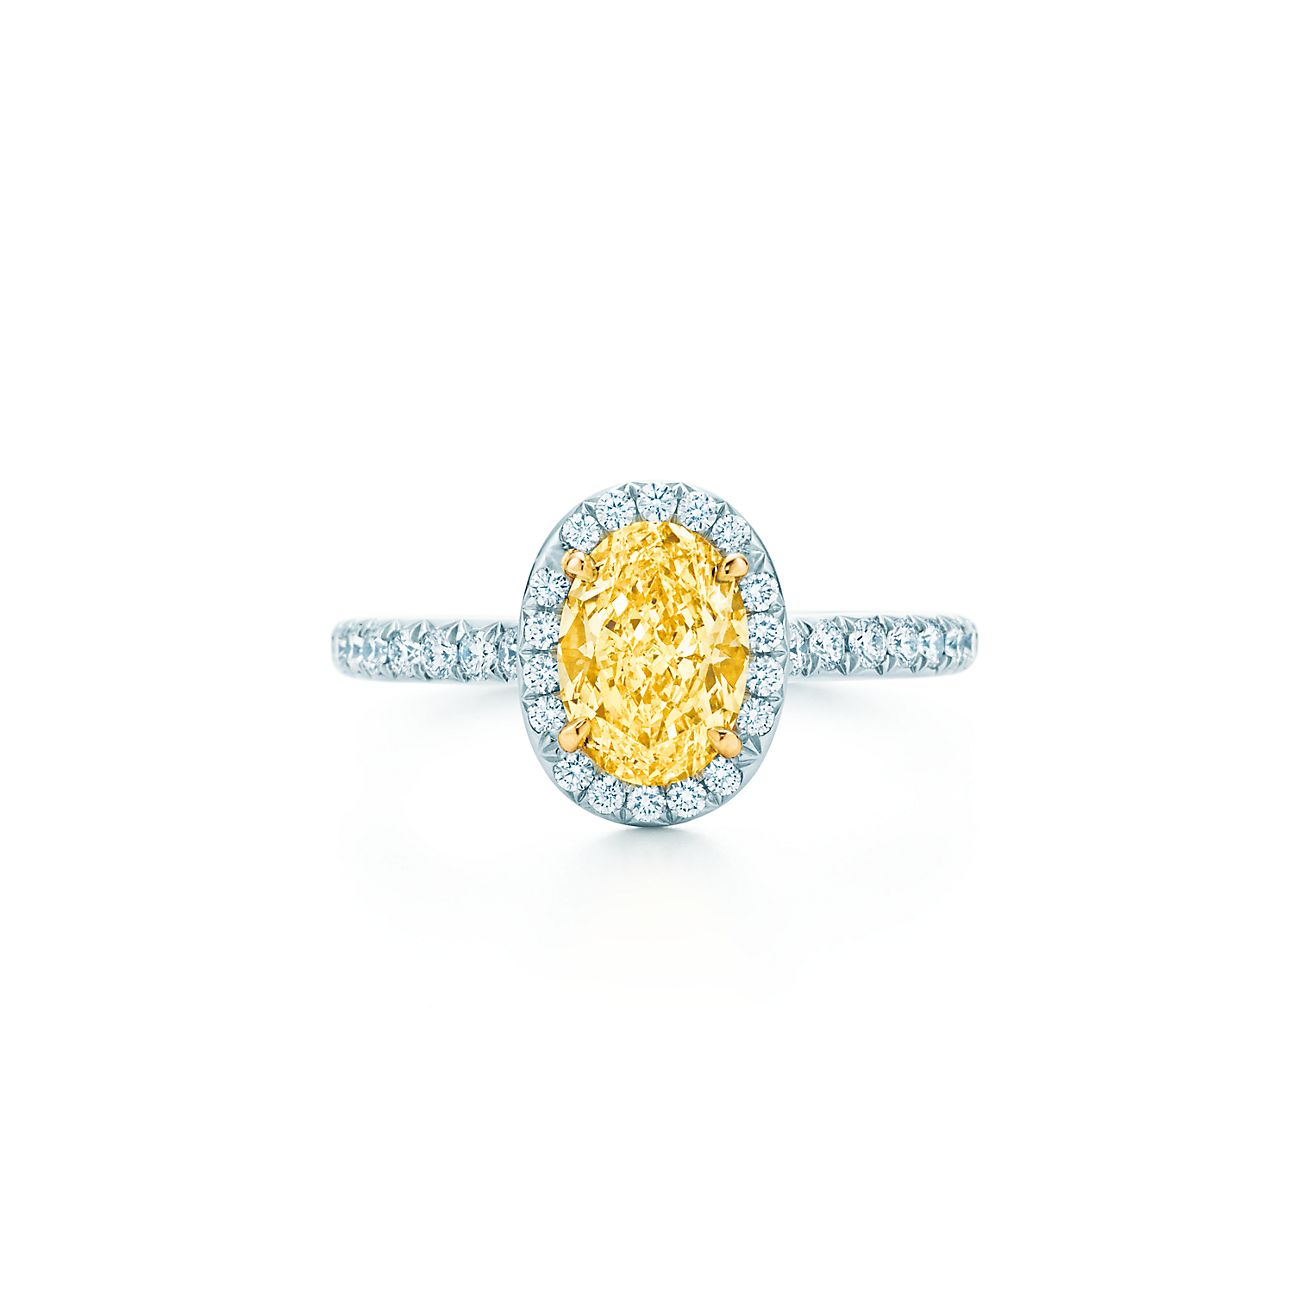 New Tiffany Soleste® Yellow And White Diamond Ring In Platinum And 18k Gold